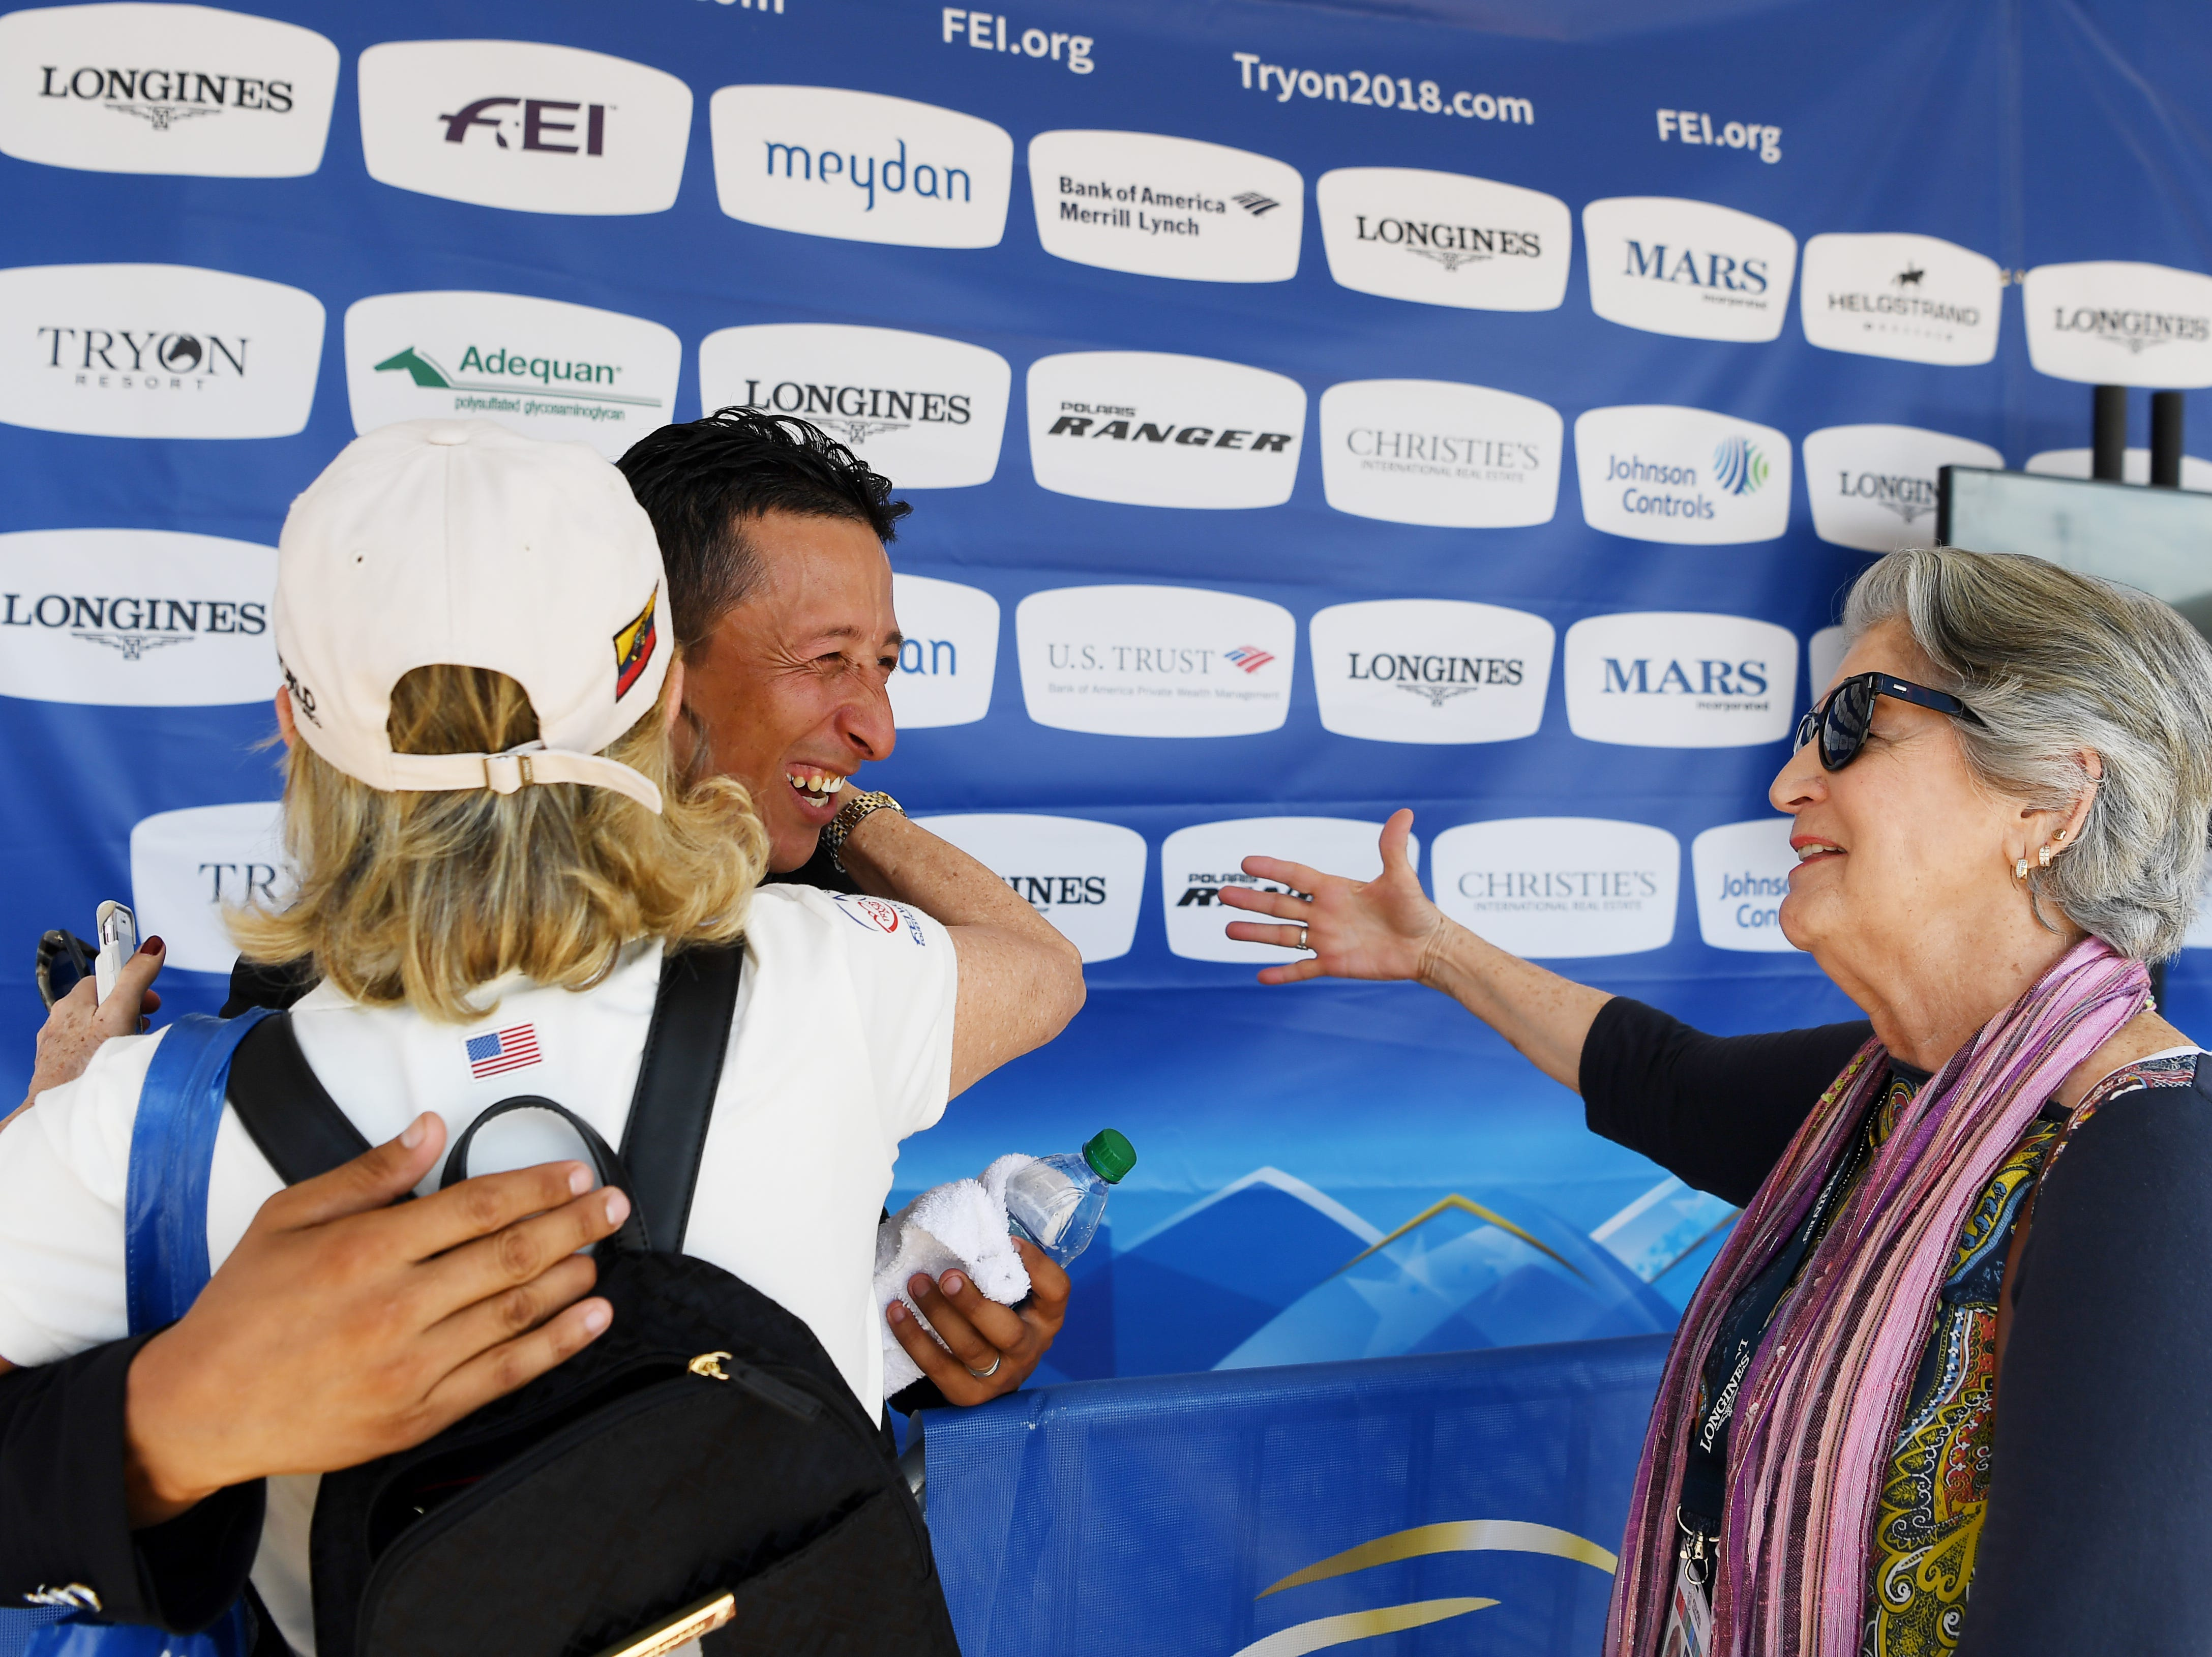 Julio Mendoza, of Columbus, NC, is congratulated by Gloria Vinueza de Cuesta, left, and Isabel Maldonada following his competition in dressage at the World Equestrian Games in Tryon Sept. 13, 2018.